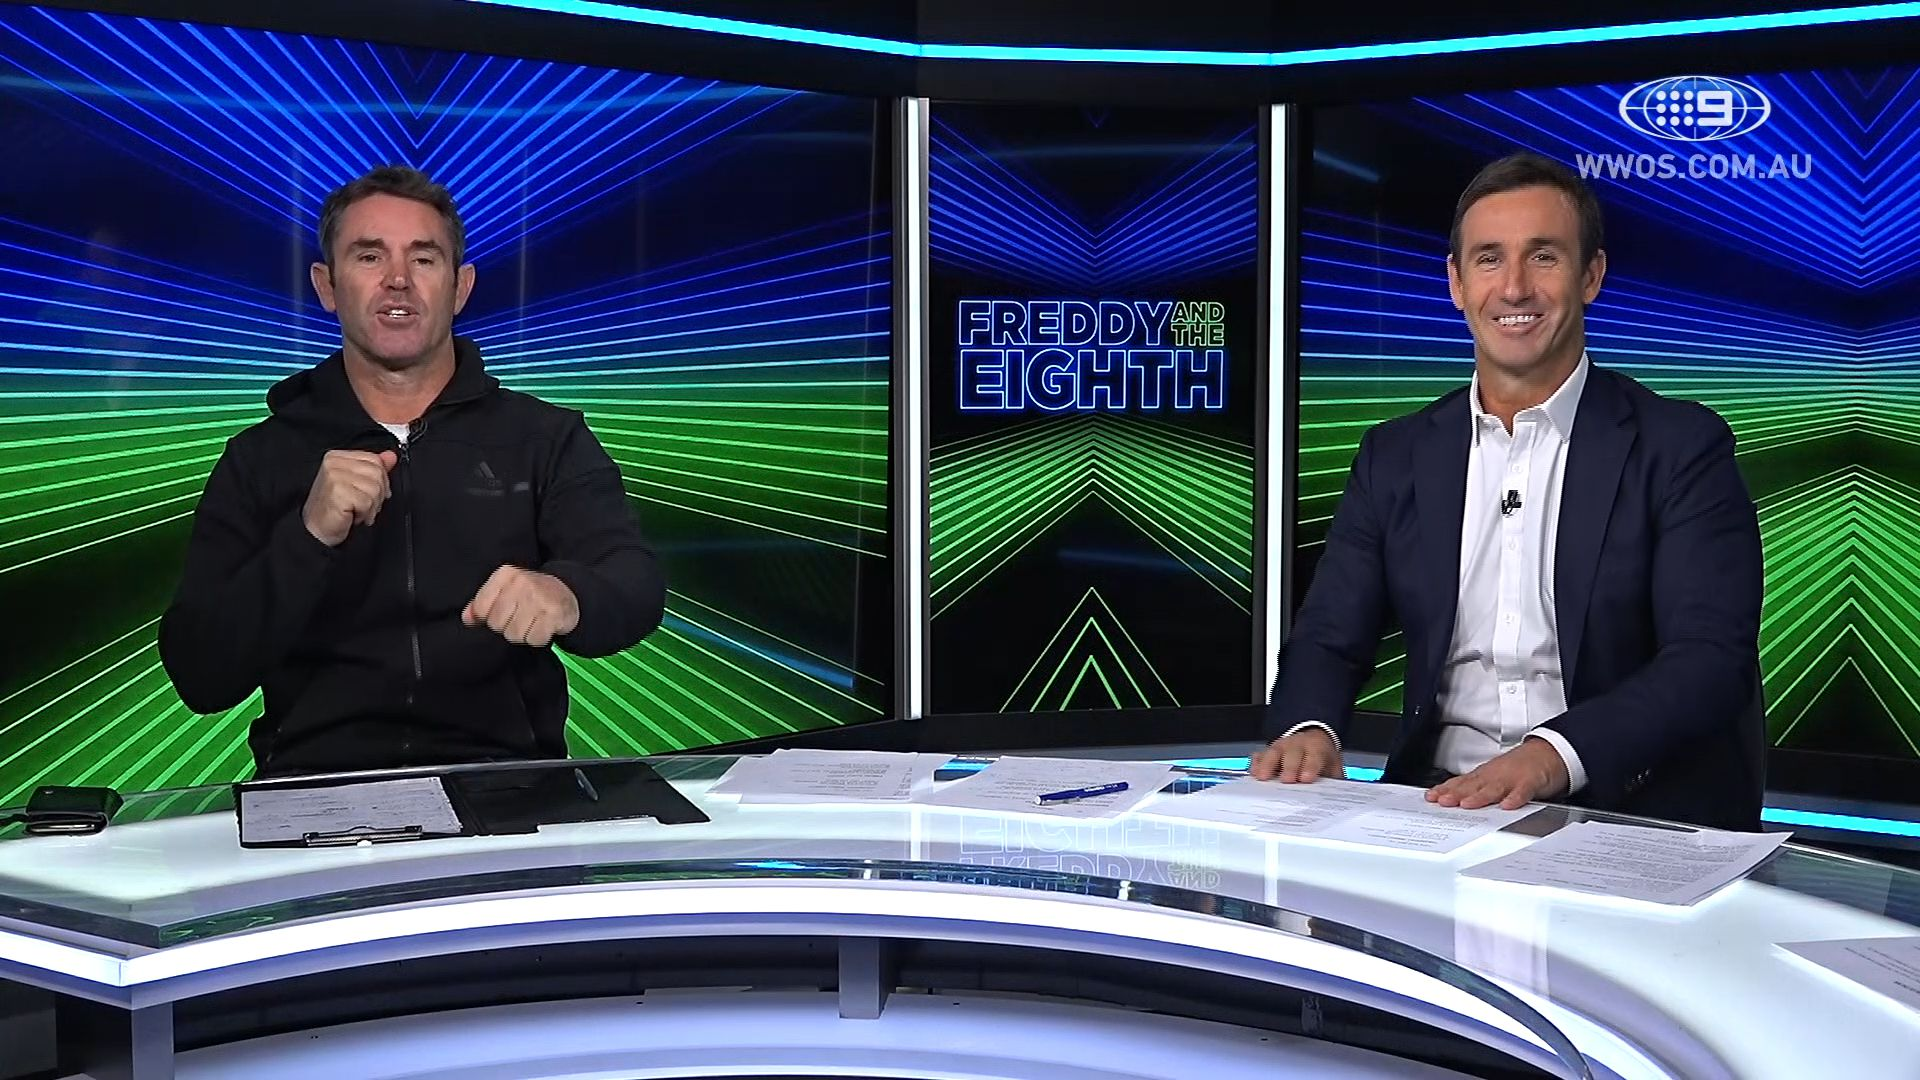 NRL Round 21 tips: Andrew Johns, Brad Fittler and Nine's experts give their predictions